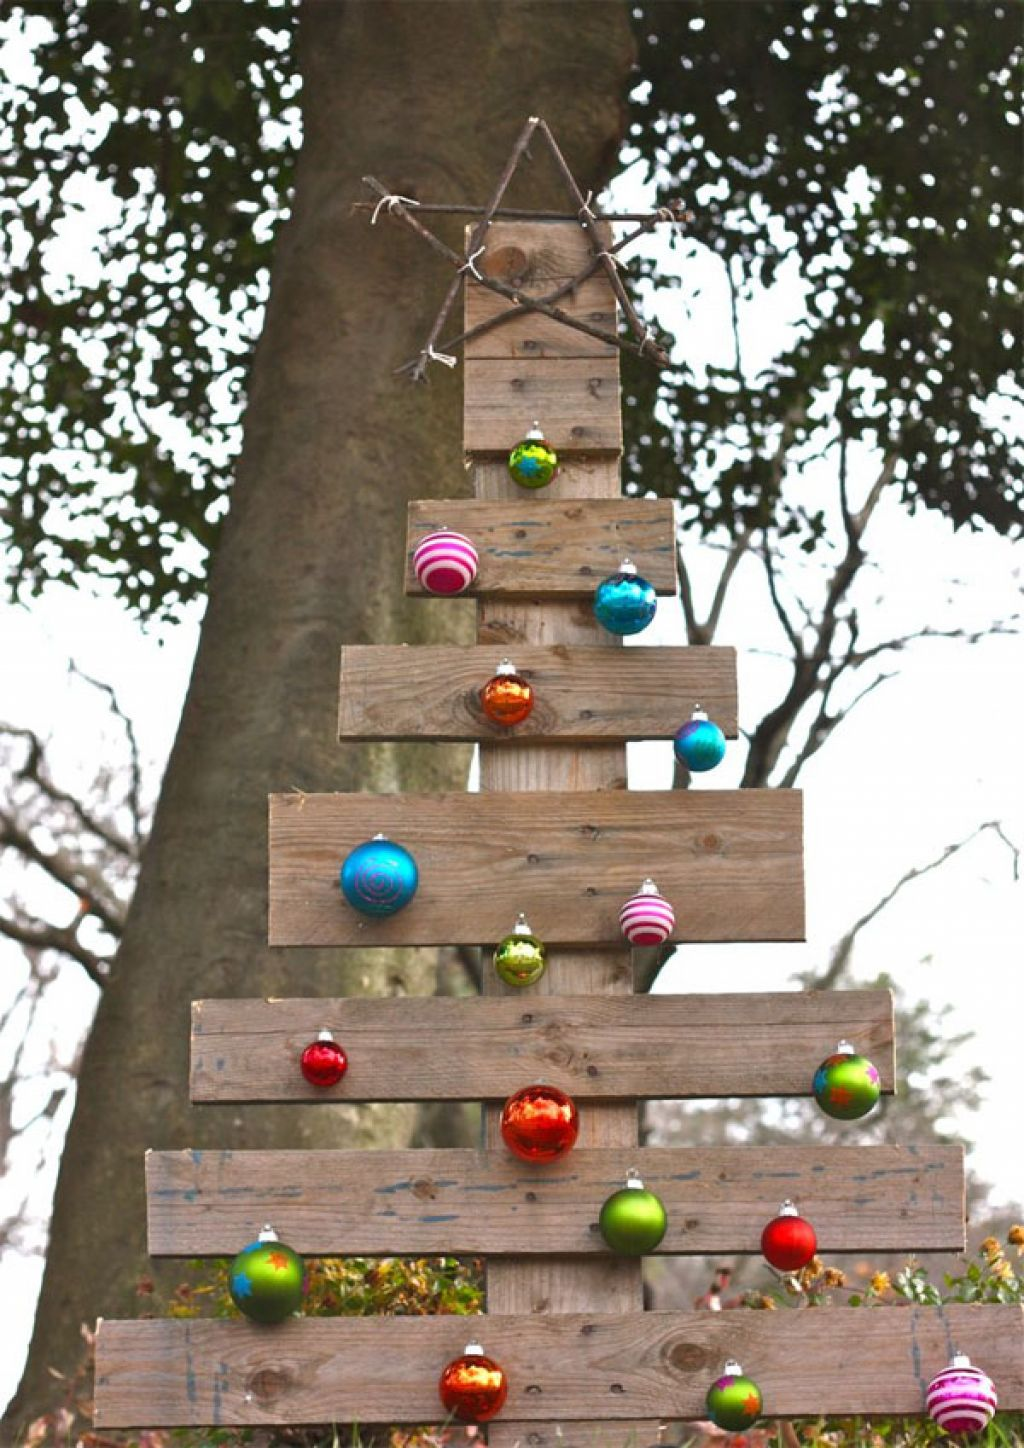 Outdoor decorating ideas 10 diy ideas for the holidays for Decorating outdoor trees